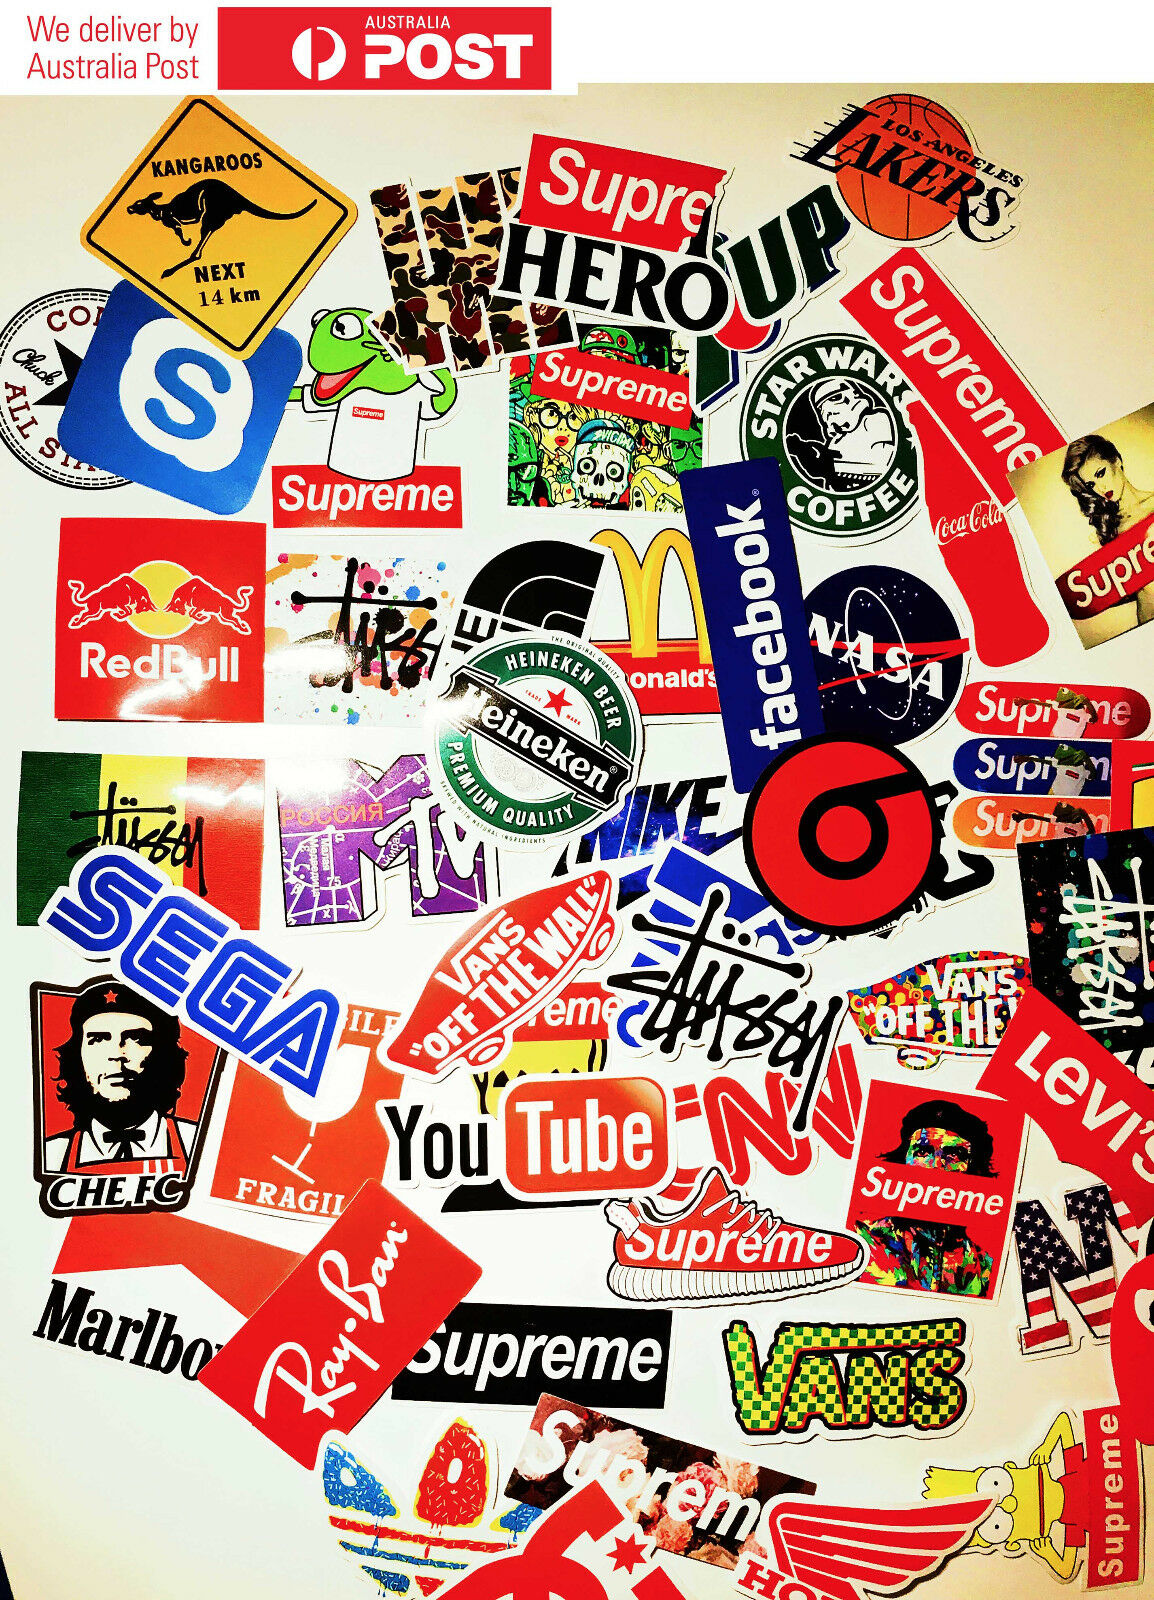 Details about 60pc brand logo stickers vinyl stickers decals snowboard luggage car laptop bike